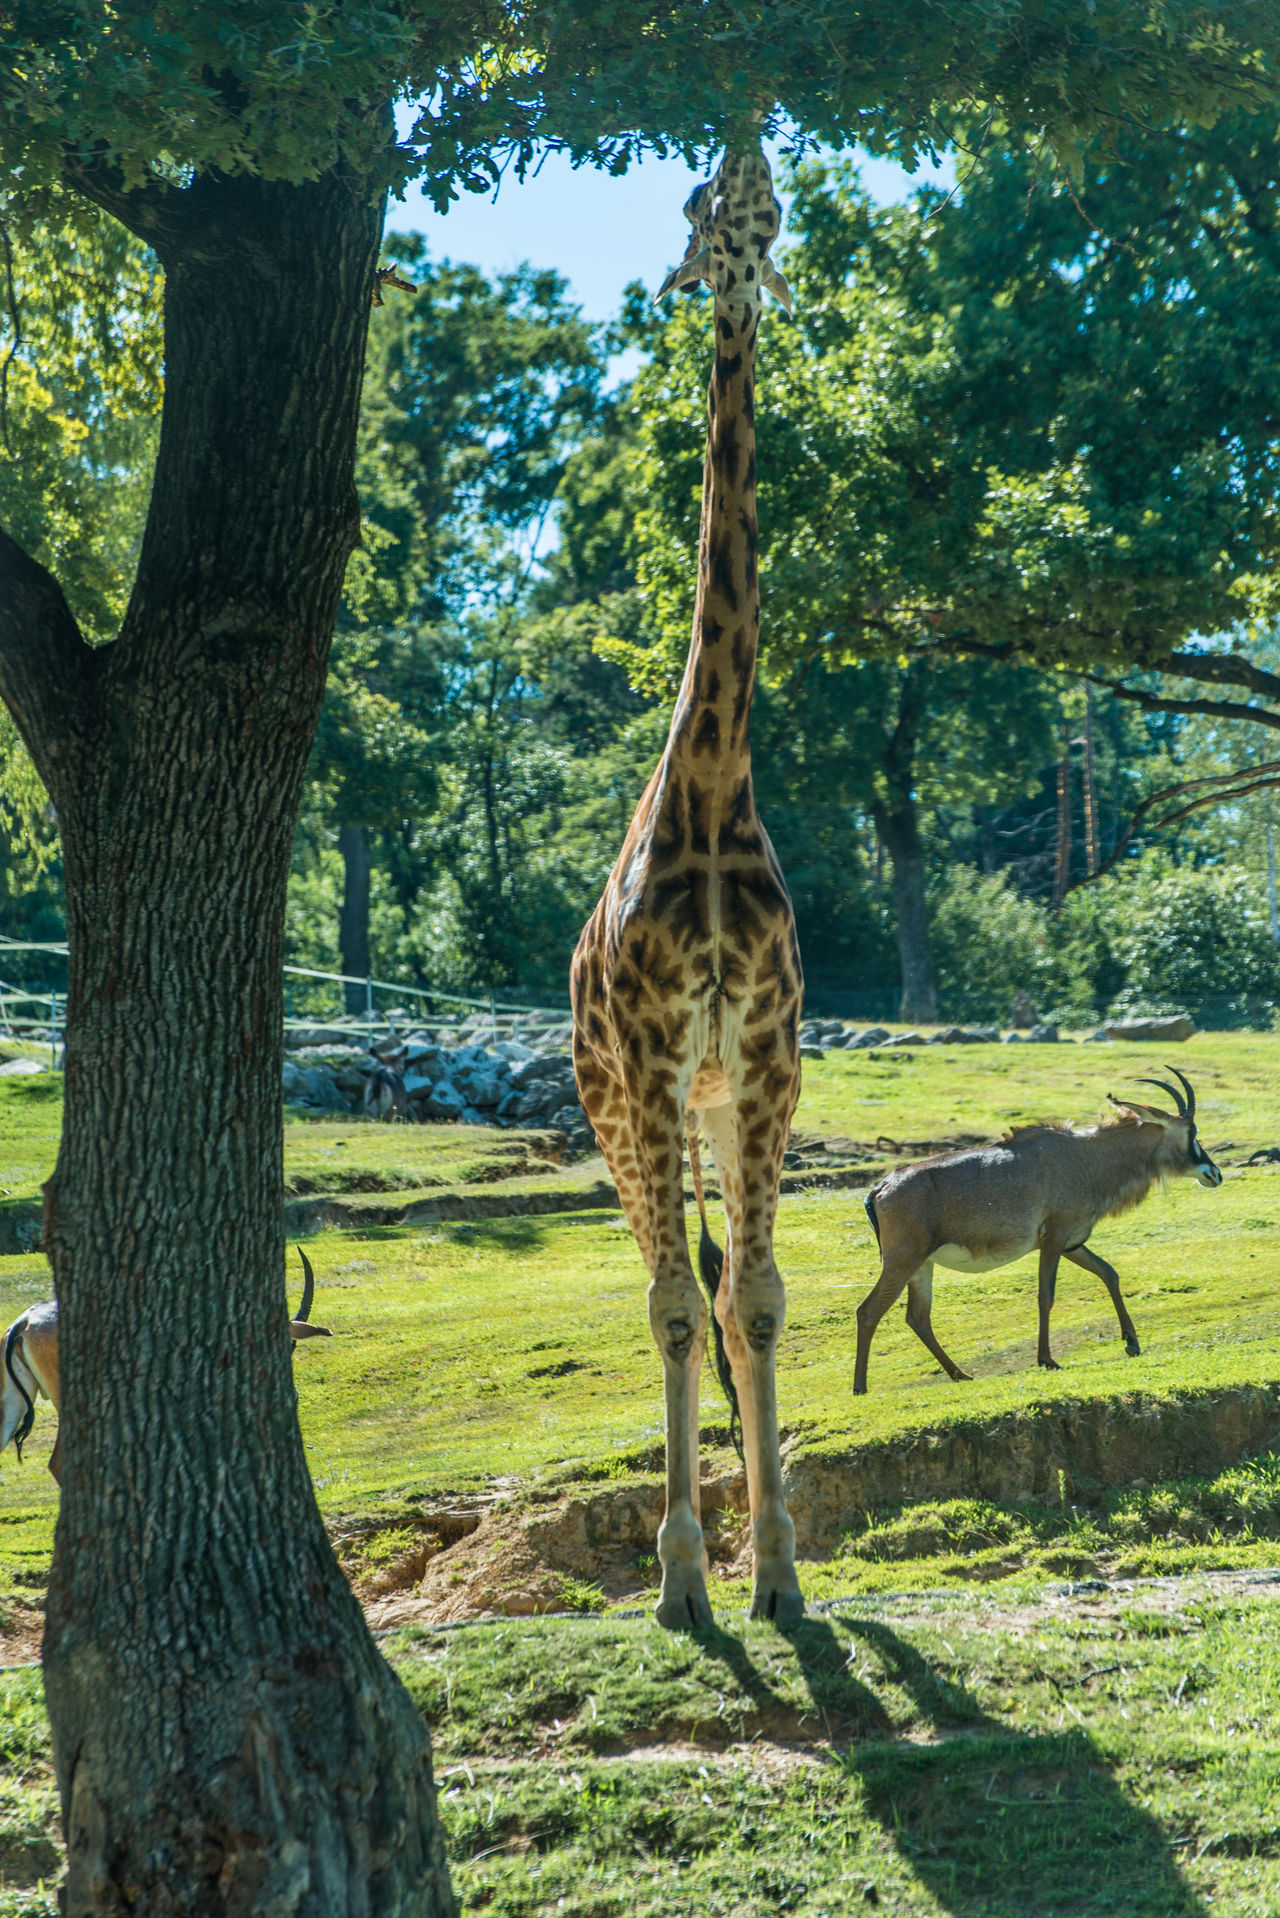 giraffe in natural park Animal Animal Themes Beauty In Nature Day Field Forest Giraffe Grass Grazing Green Color Growth Herbivorous Landscape Mammal Nature No People Non-urban Scene Outdoors Safari Tranquil Scene Tranquility Tree Tree Trunk Wildlife Zoology